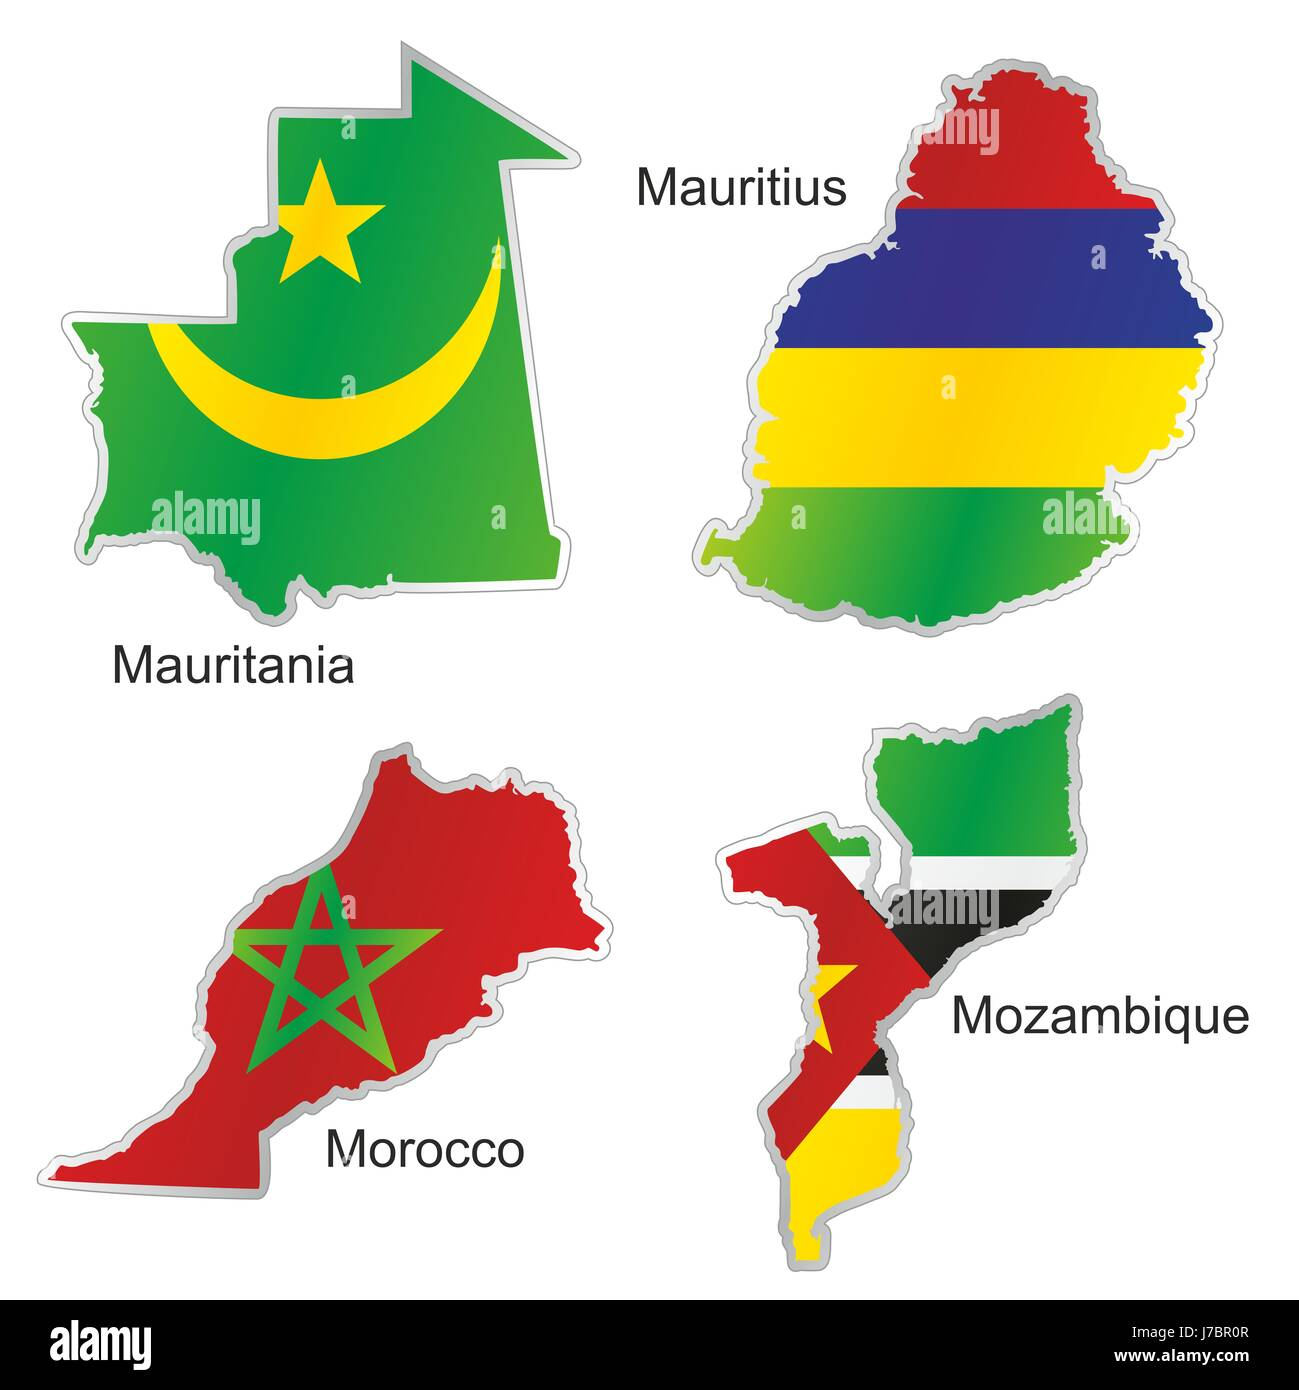 Africa Flag Morocco Mauritius Mozambique Mauritania Map Atlas Map - Mauritius map africa